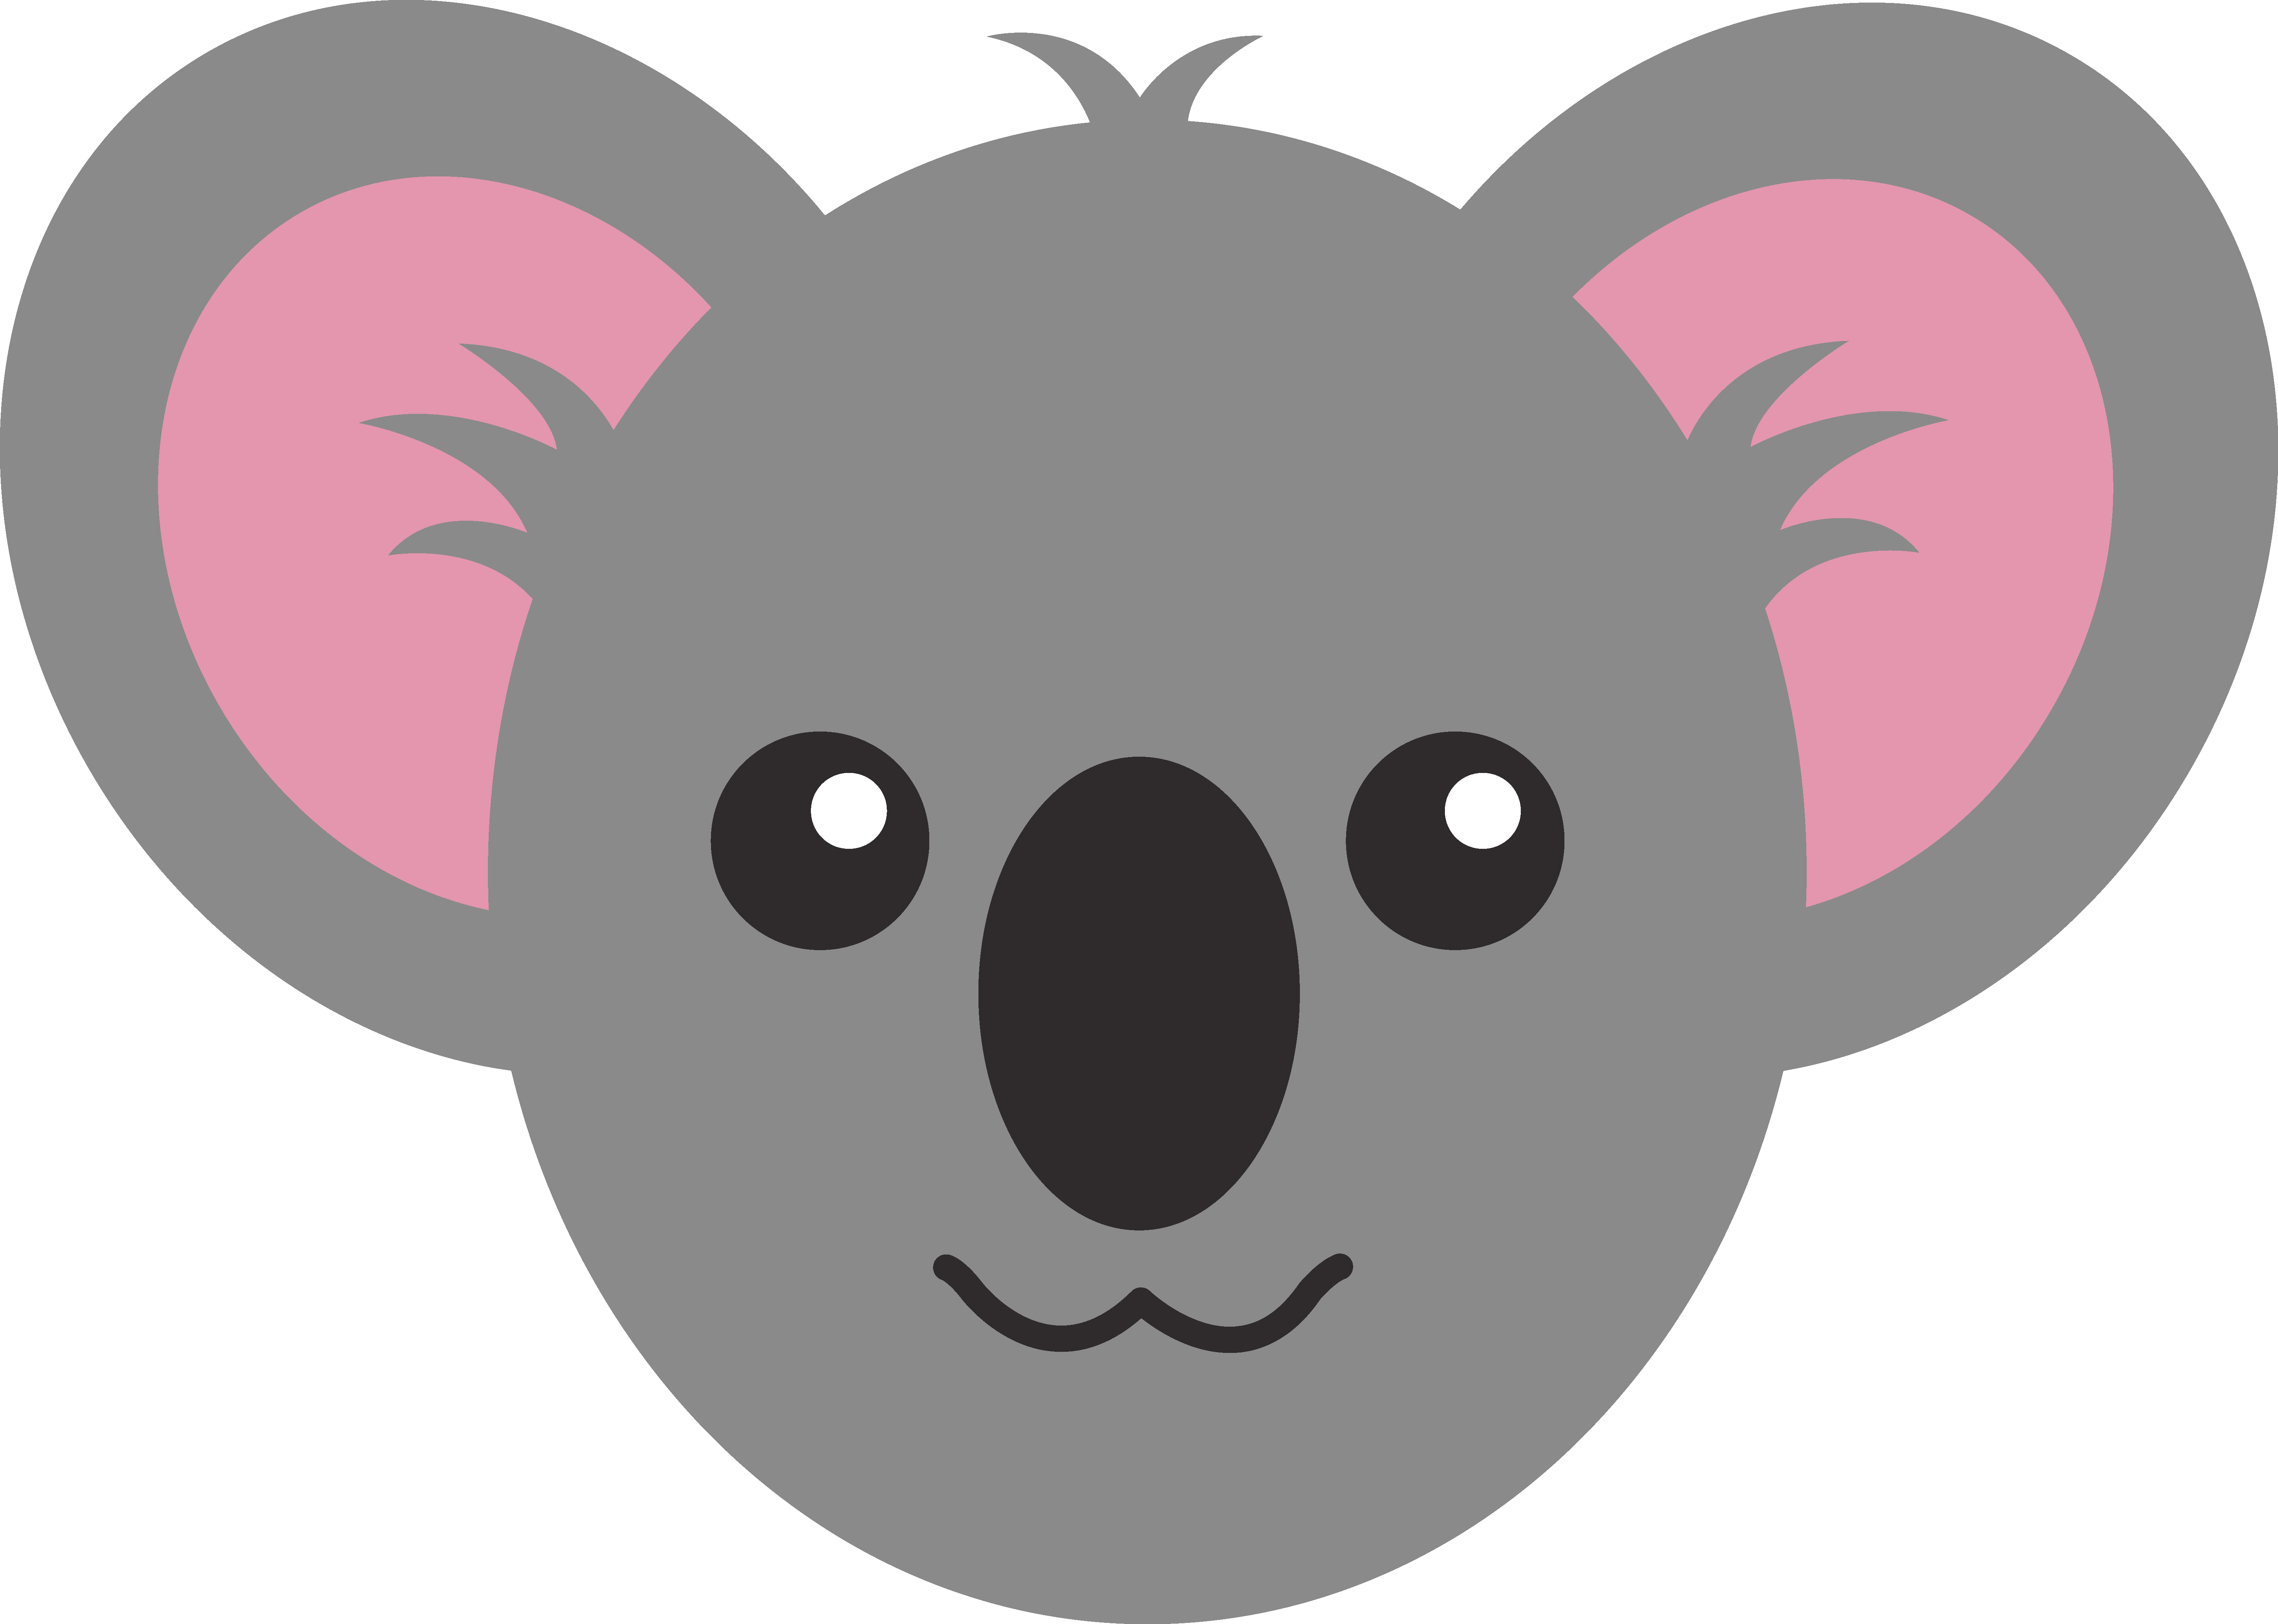 Nickel clipart animated. Collectionphotos cute koala bear